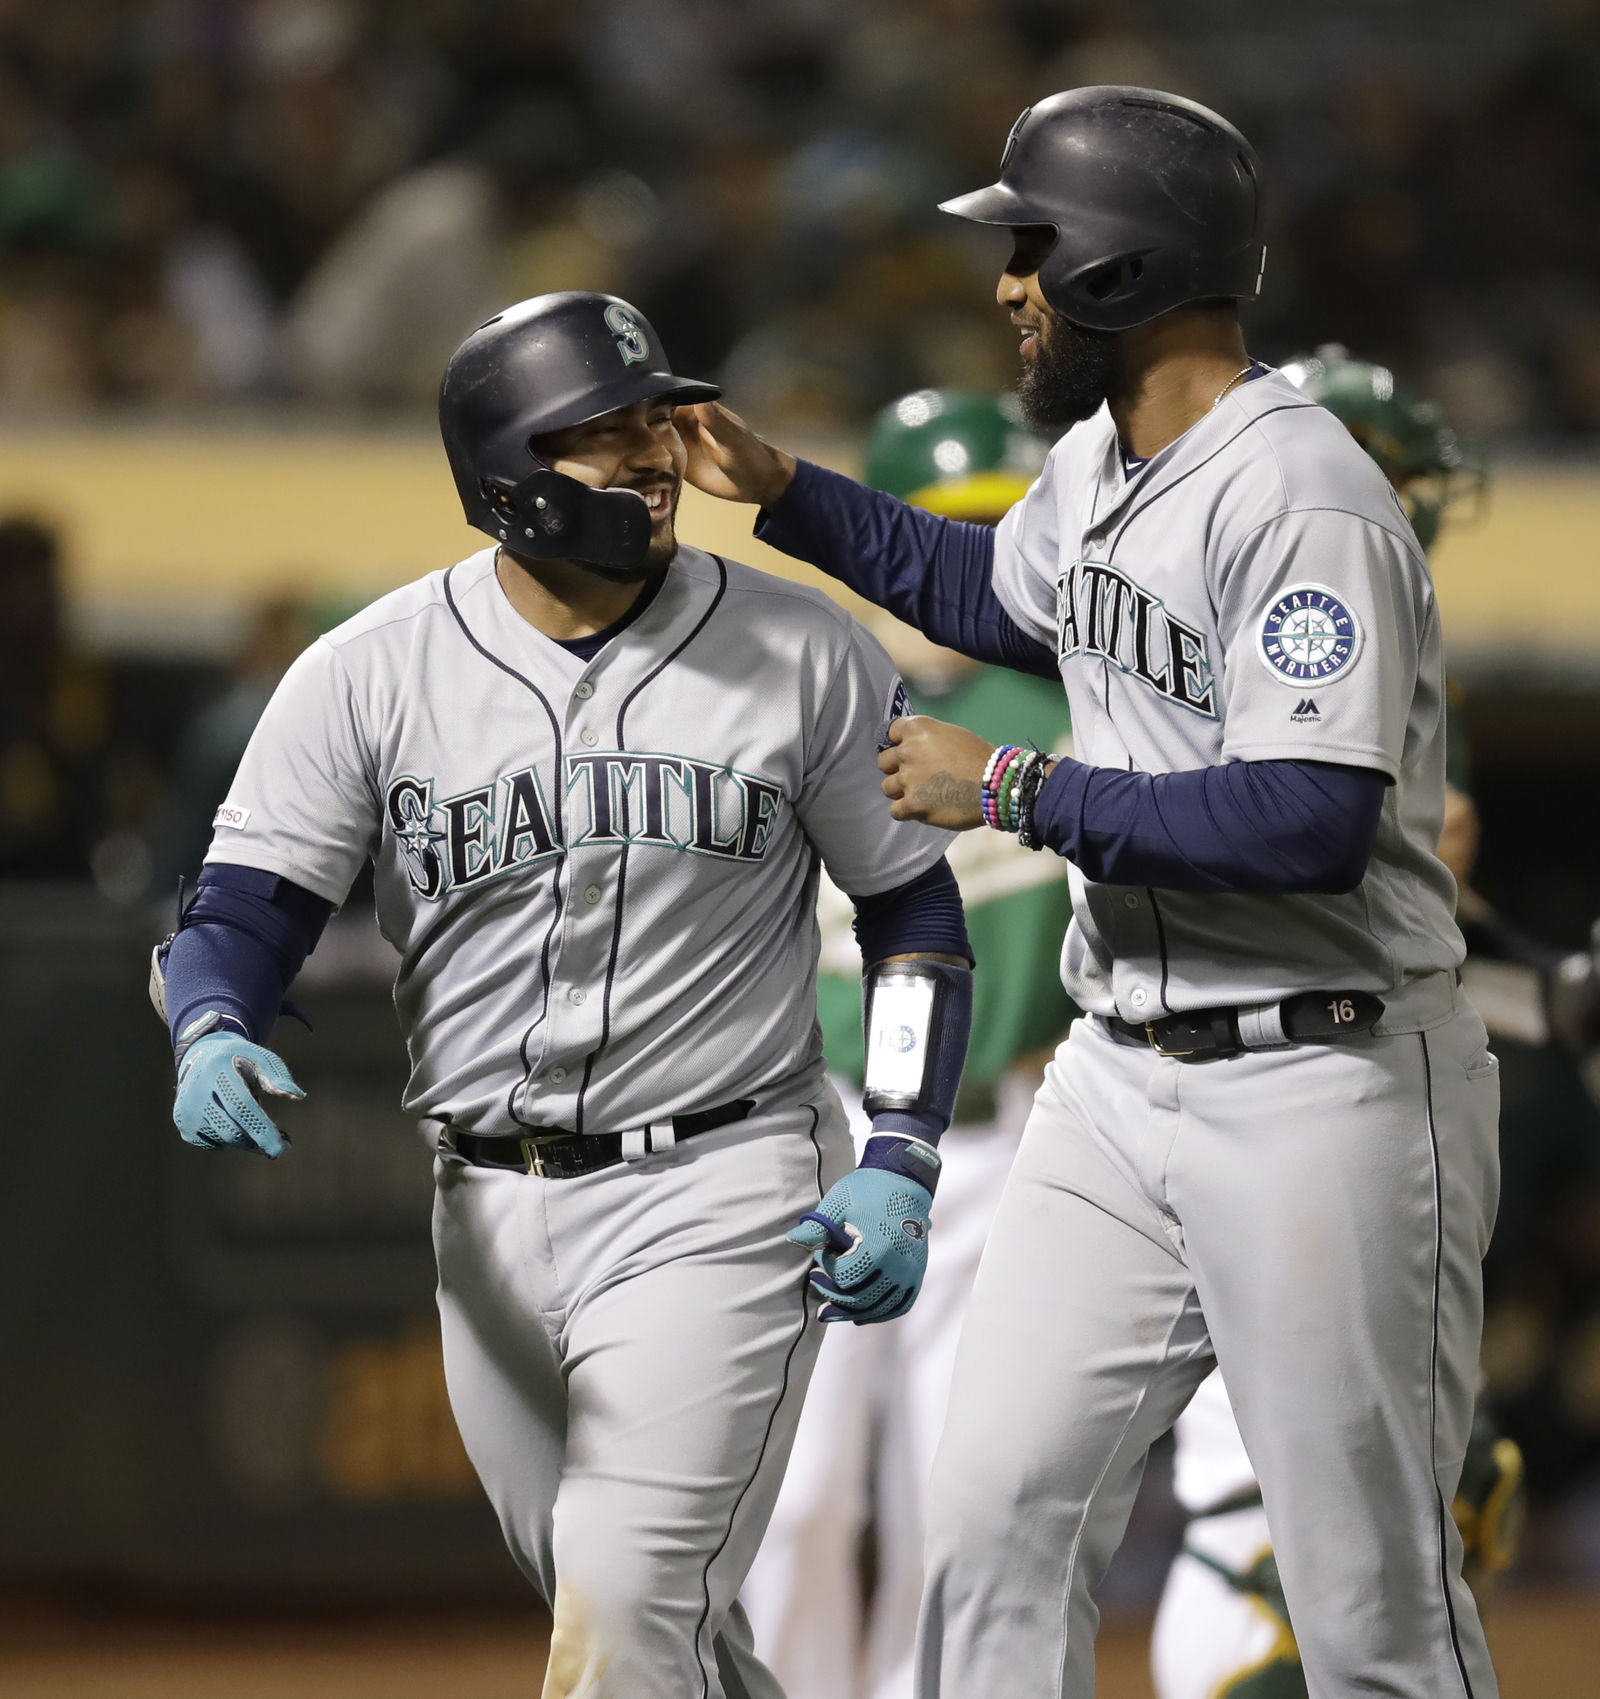 Seattle Mariners' Omar Narvaez, left, celebrates with Domingo Santana after hitting a two-run home run off Oakland Athletics' Wei-Chung Wang during the seventh inning of a baseball game Friday, June 14, 2019, in Oakland, Calif. (AP Photo/Ben Margot)